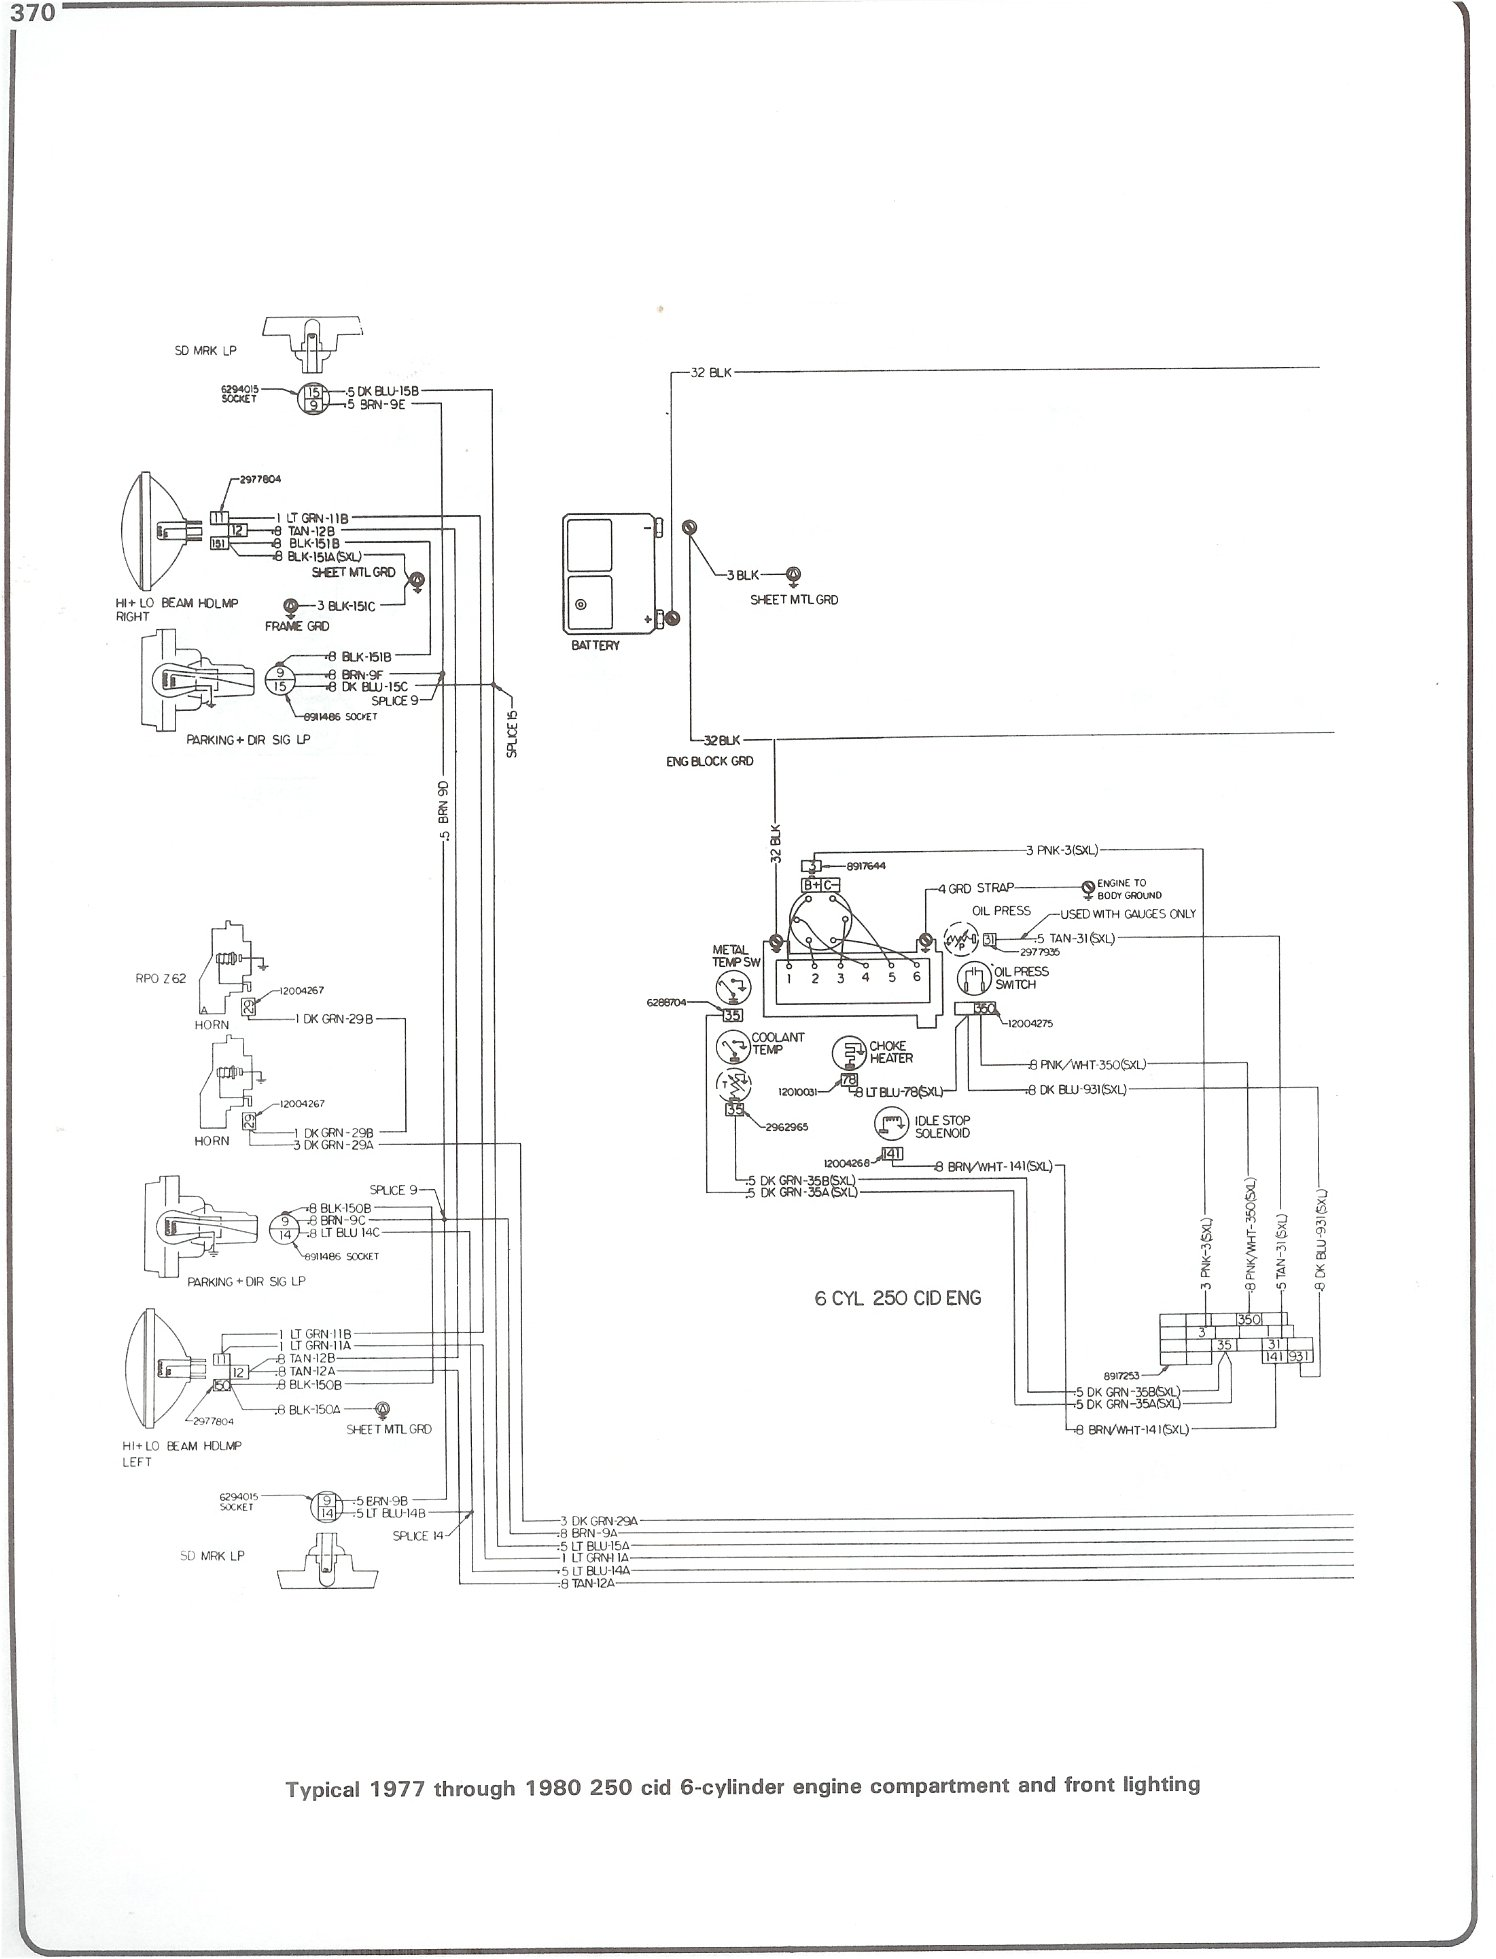 complete 73 87 wiring diagrams rh forum 73 87chevytrucks com 1999 chevy blazer ignition wiring diagram 1999 chevy blazer ignition wiring diagram